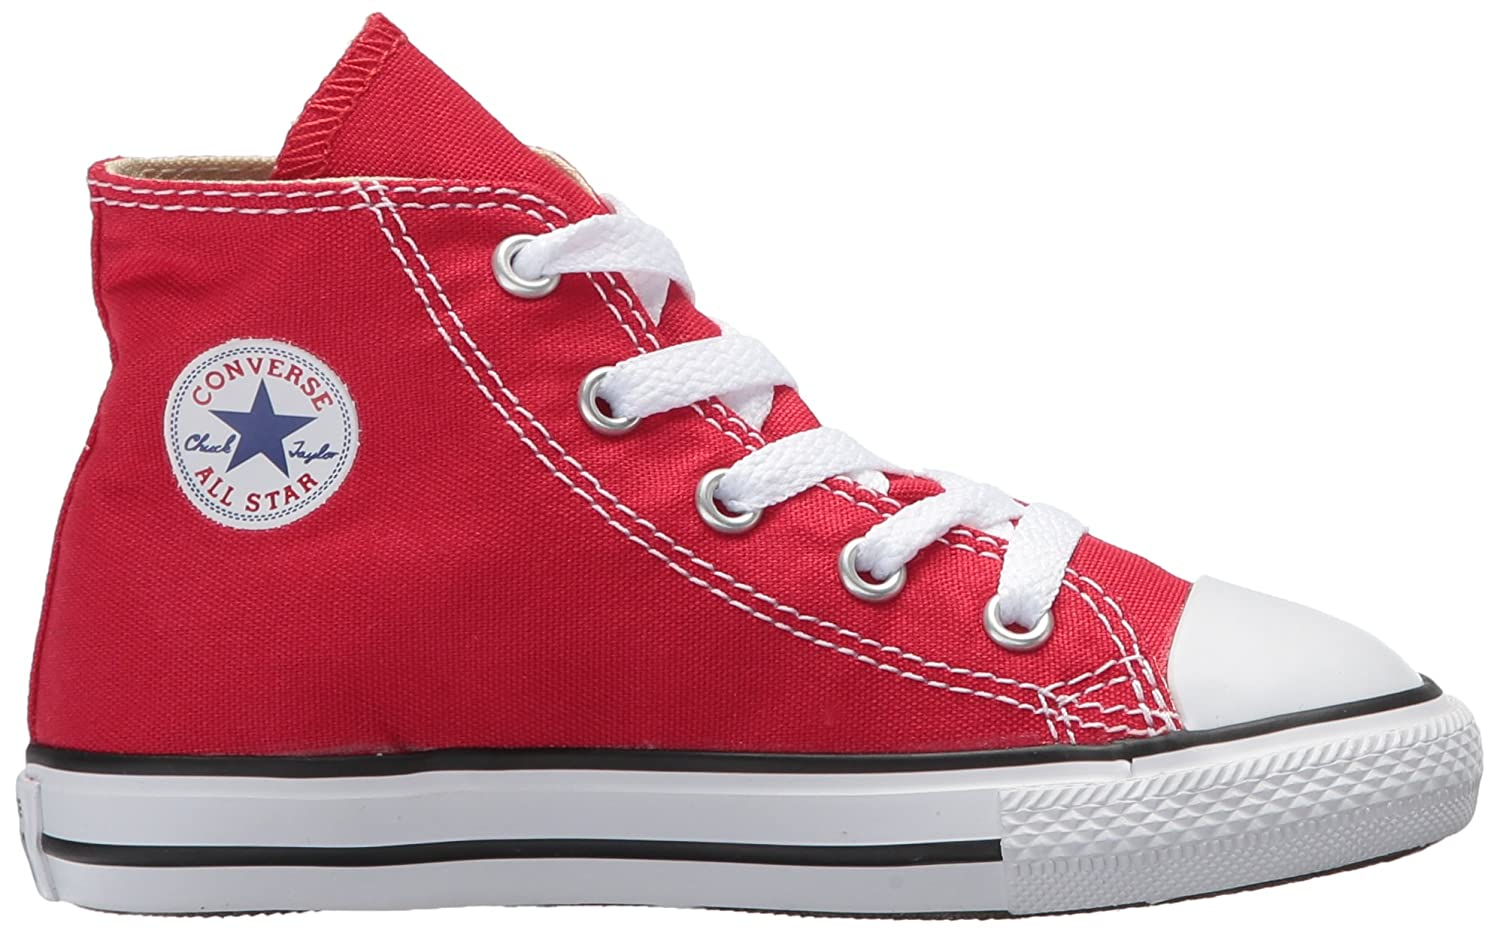 Converse Kids' Chuck Taylor All Star Canvas 9 High Top Sneaker B0006BKBNO 9 Canvas M US Toddler|Red 33fea2